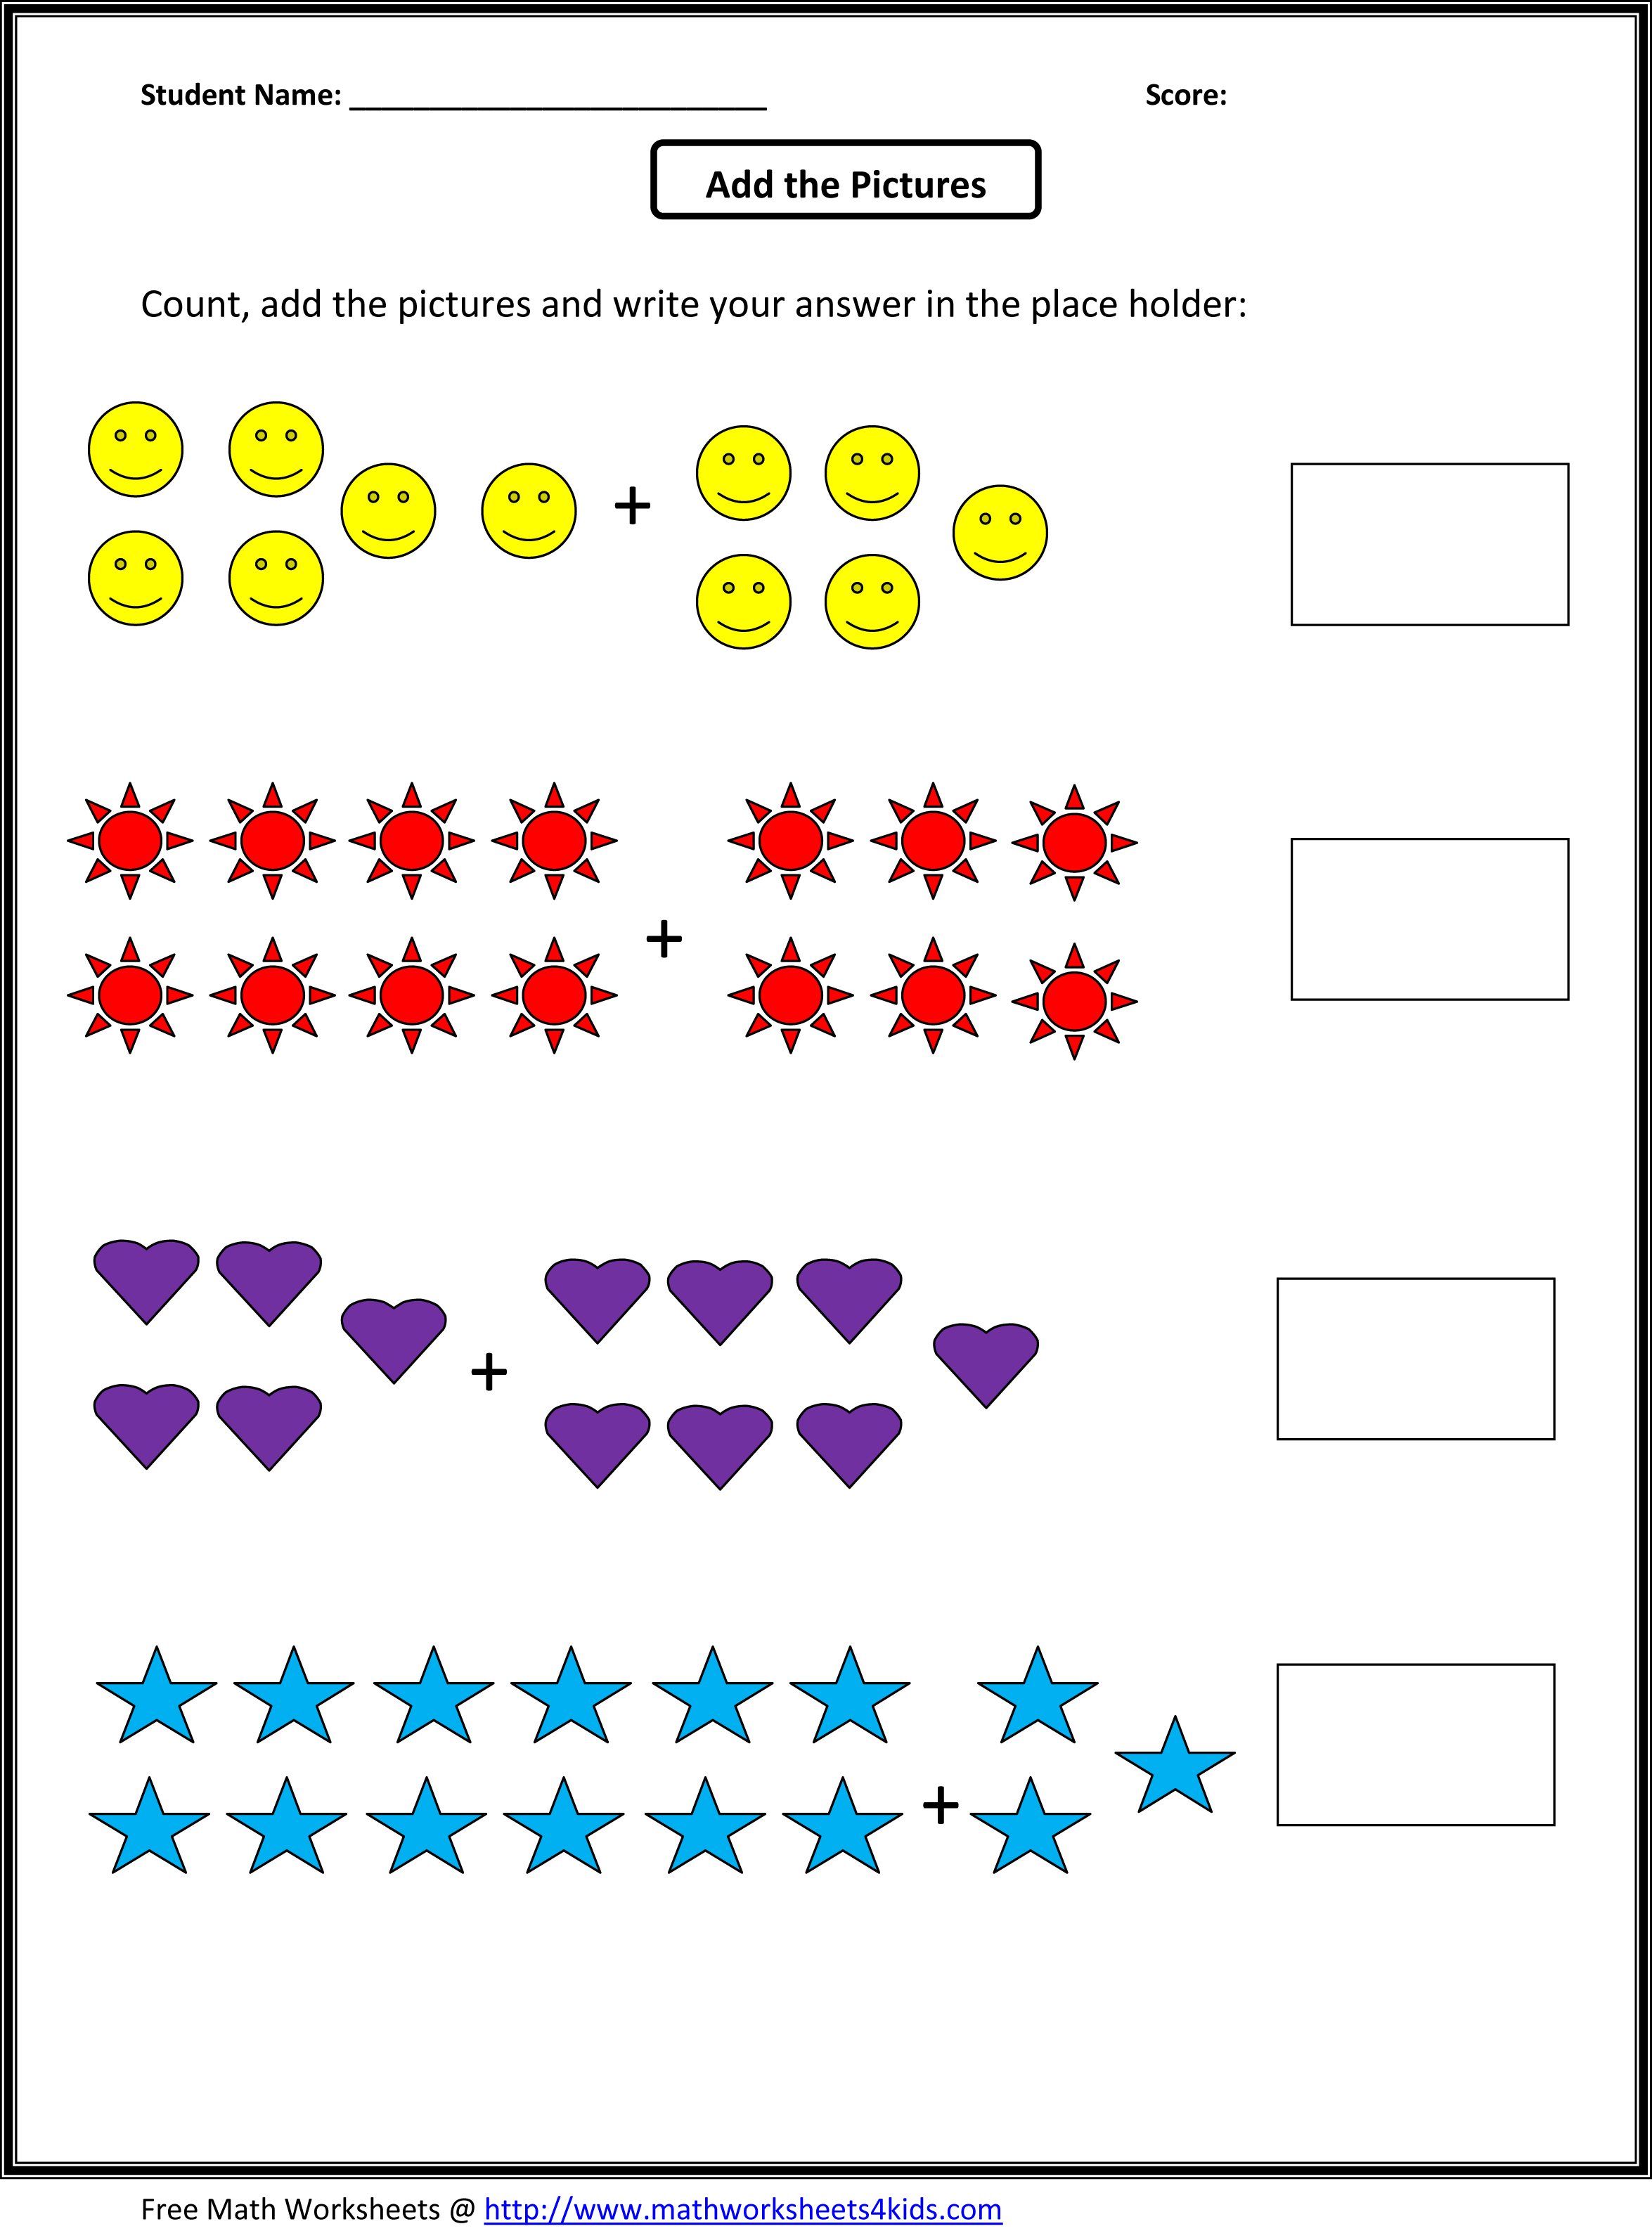 Weirdmailus  Personable Grade  Maths Worksheet  Reocurent With Remarkable Math Worksheets For St Grade Free  Reocurent With Awesome Rd Grade Sequencing Worksheets Also Prentice Hall Worksheet Answers In Addition School Worksheet And First Aid For Kids Worksheets As Well As Worksheet  Special  Triangles Additionally Velocity Time Graphs Worksheet From Reocurentcom With Weirdmailus  Remarkable Grade  Maths Worksheet  Reocurent With Awesome Math Worksheets For St Grade Free  Reocurent And Personable Rd Grade Sequencing Worksheets Also Prentice Hall Worksheet Answers In Addition School Worksheet From Reocurentcom